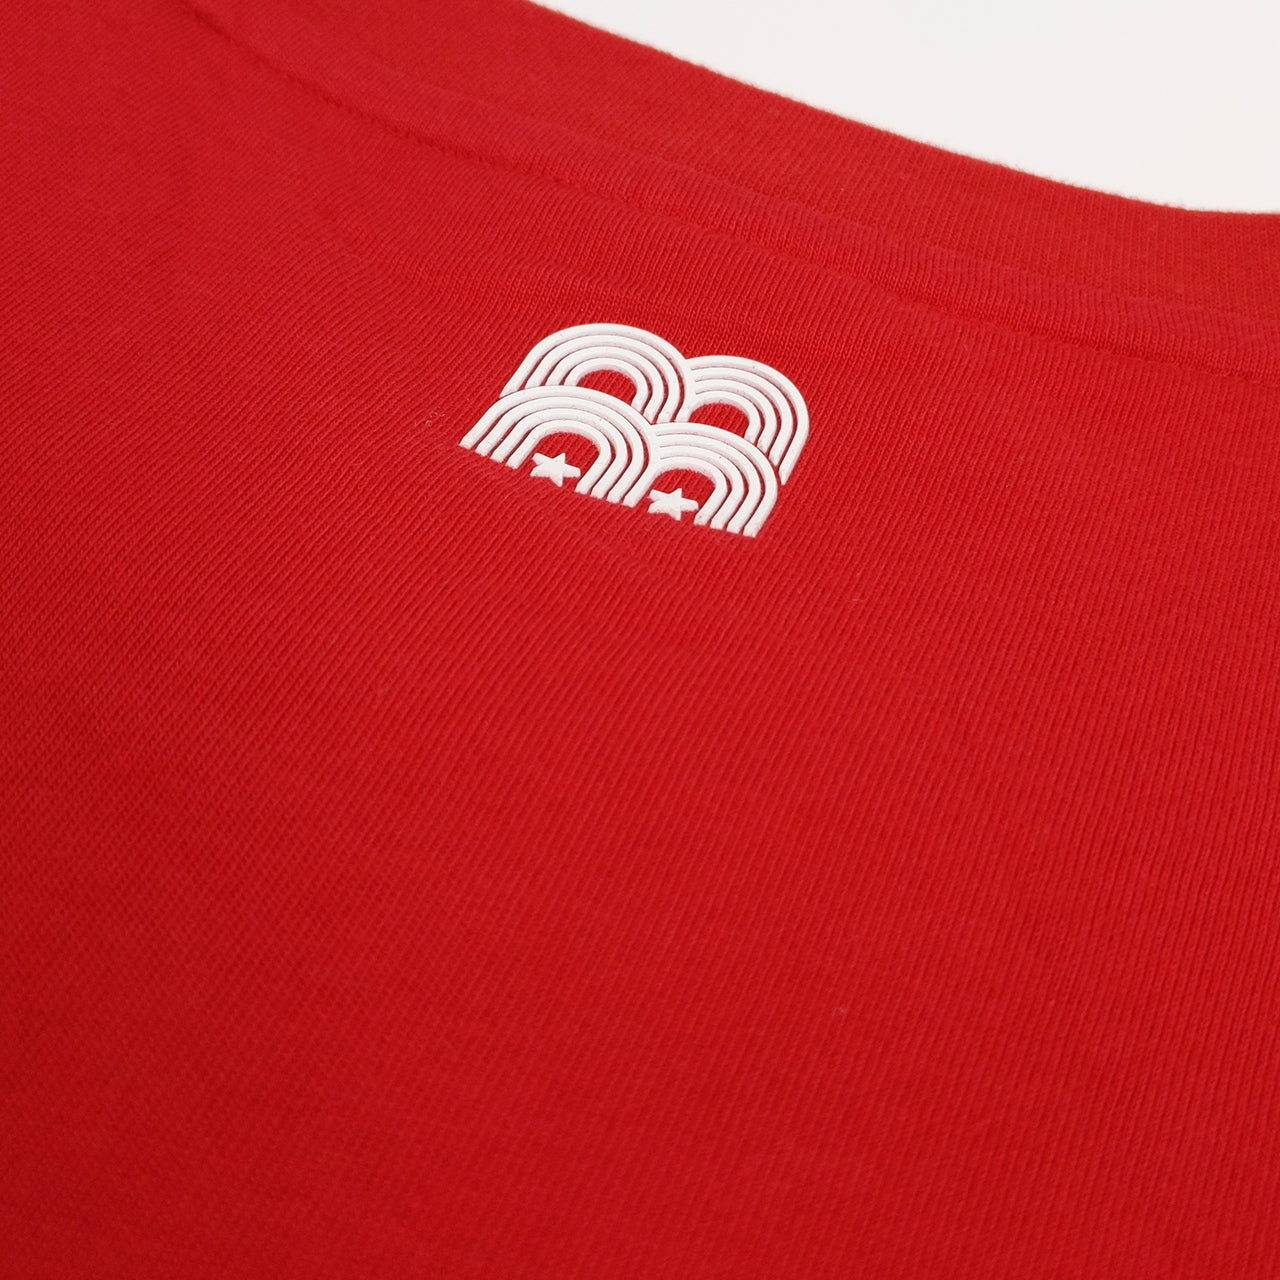 NFFC Mens Red Slogan T-Shirt